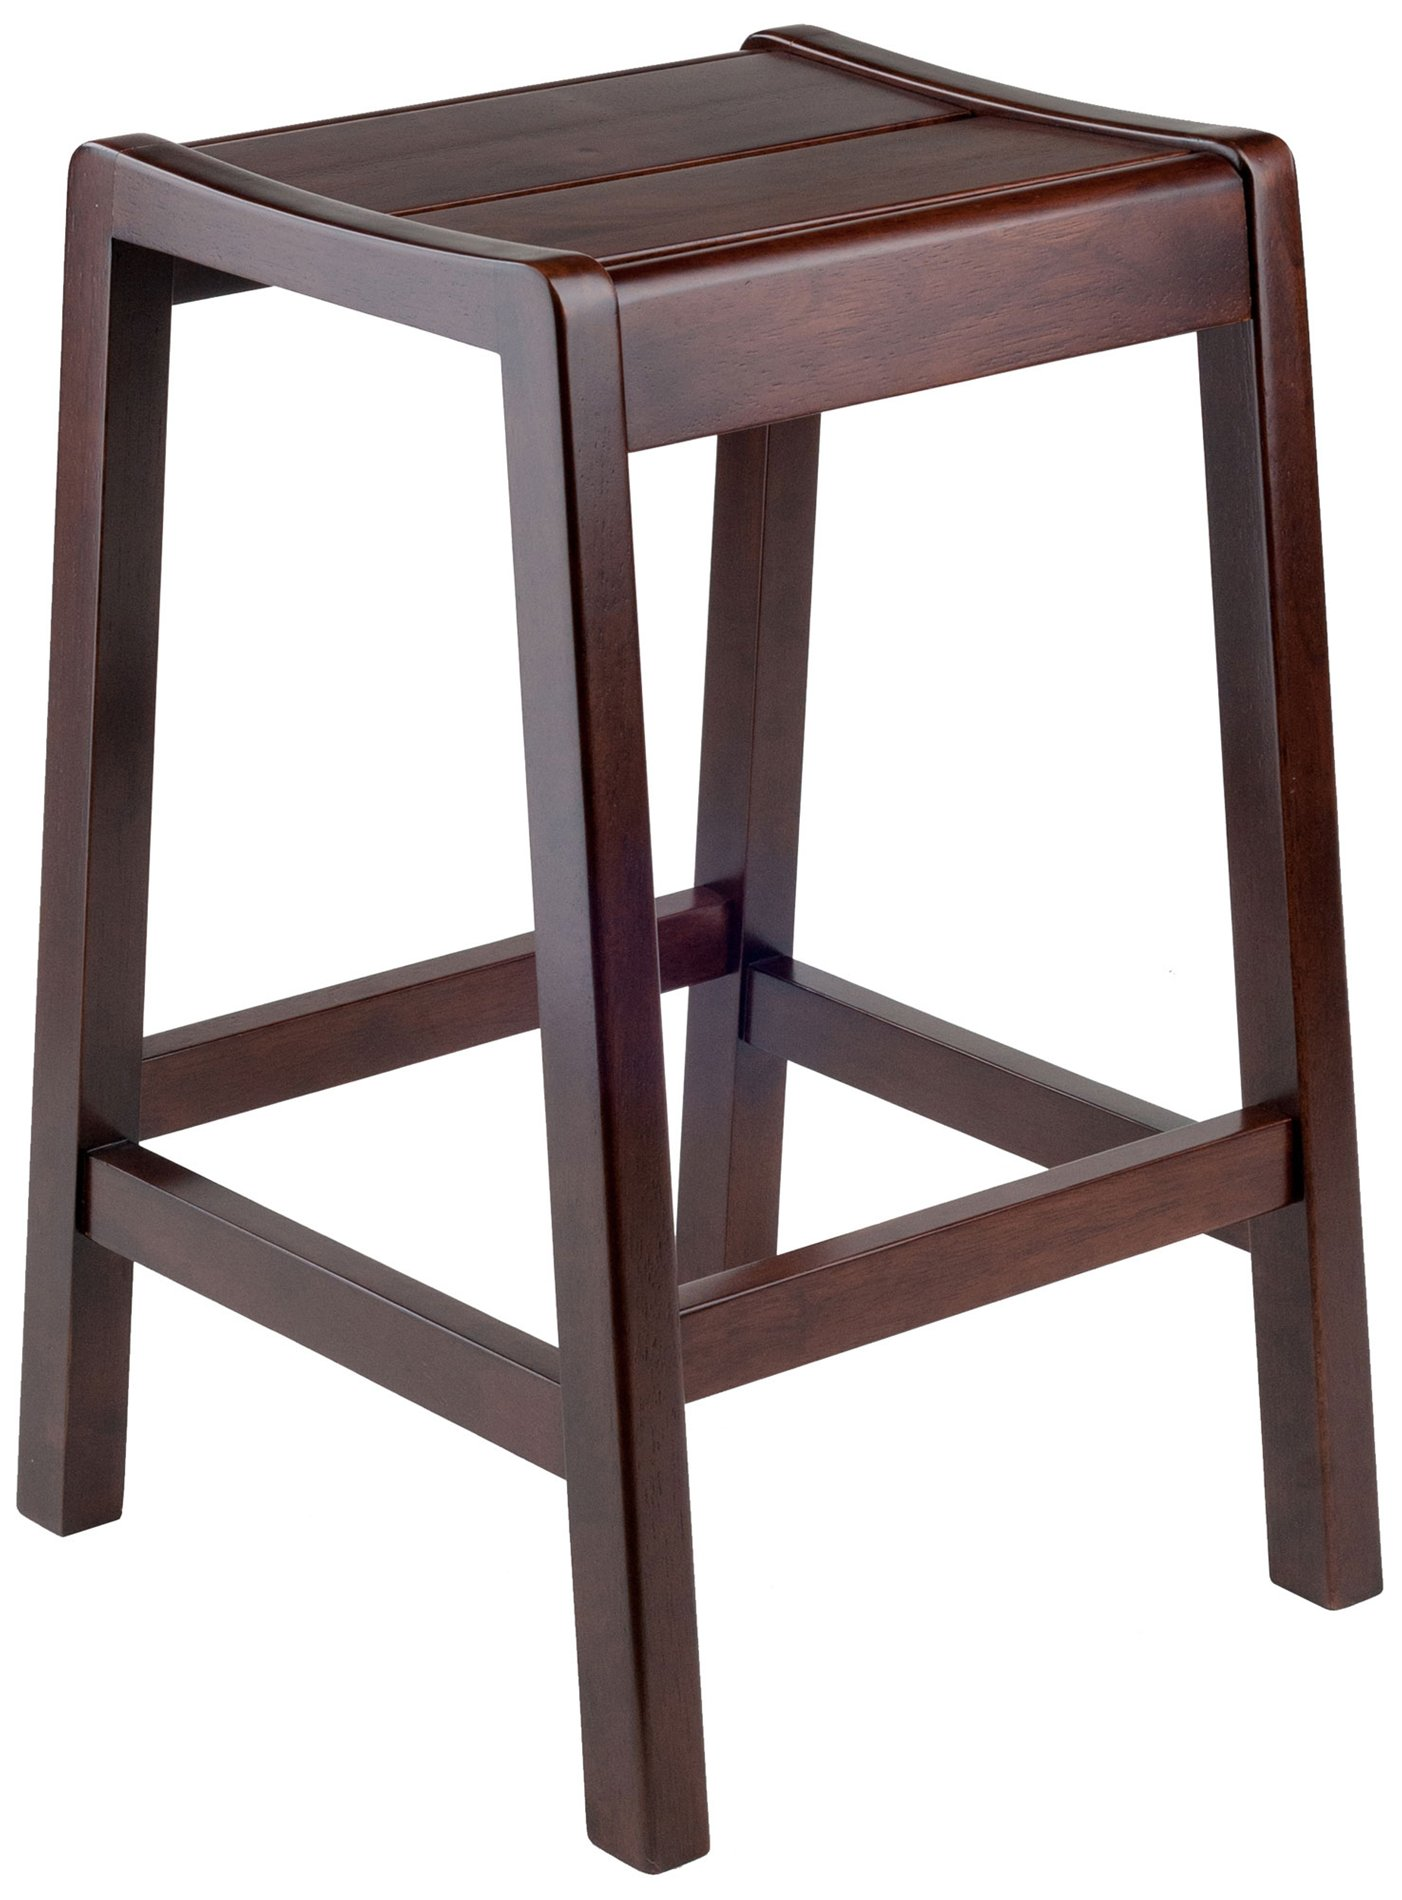 Brilliant Winsome Wood Alicante 24 Counter Stool Winw 94114 See Details Pabps2019 Chair Design Images Pabps2019Com